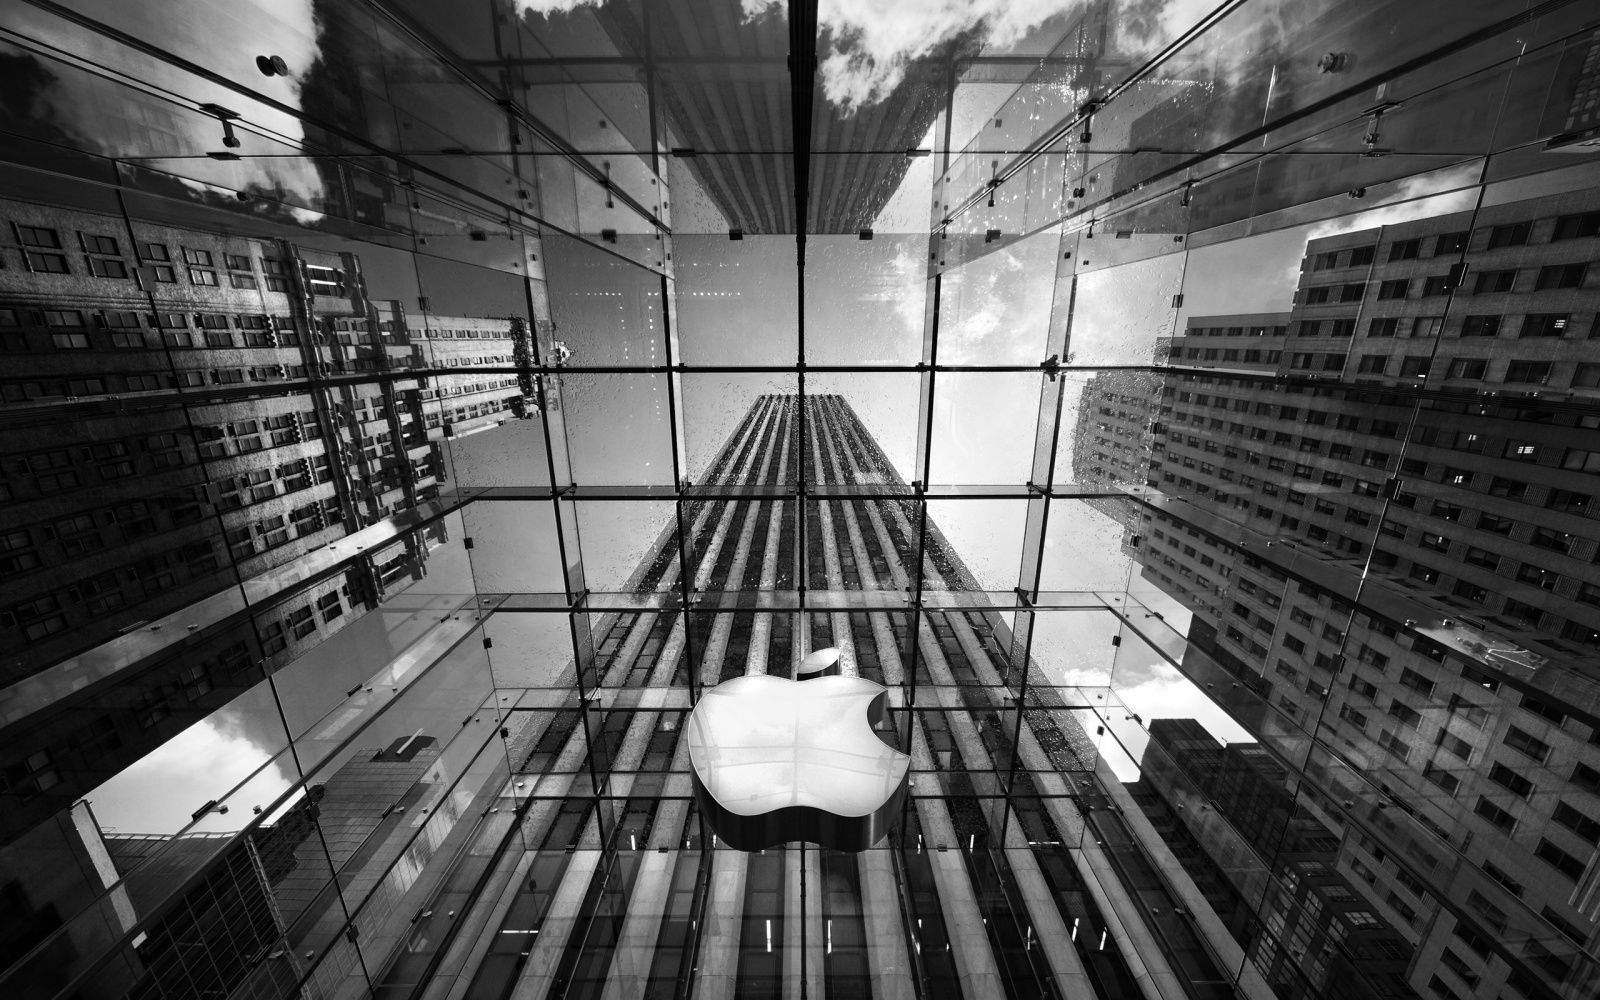 apple_sign_on_building_in_black_and_white-wide